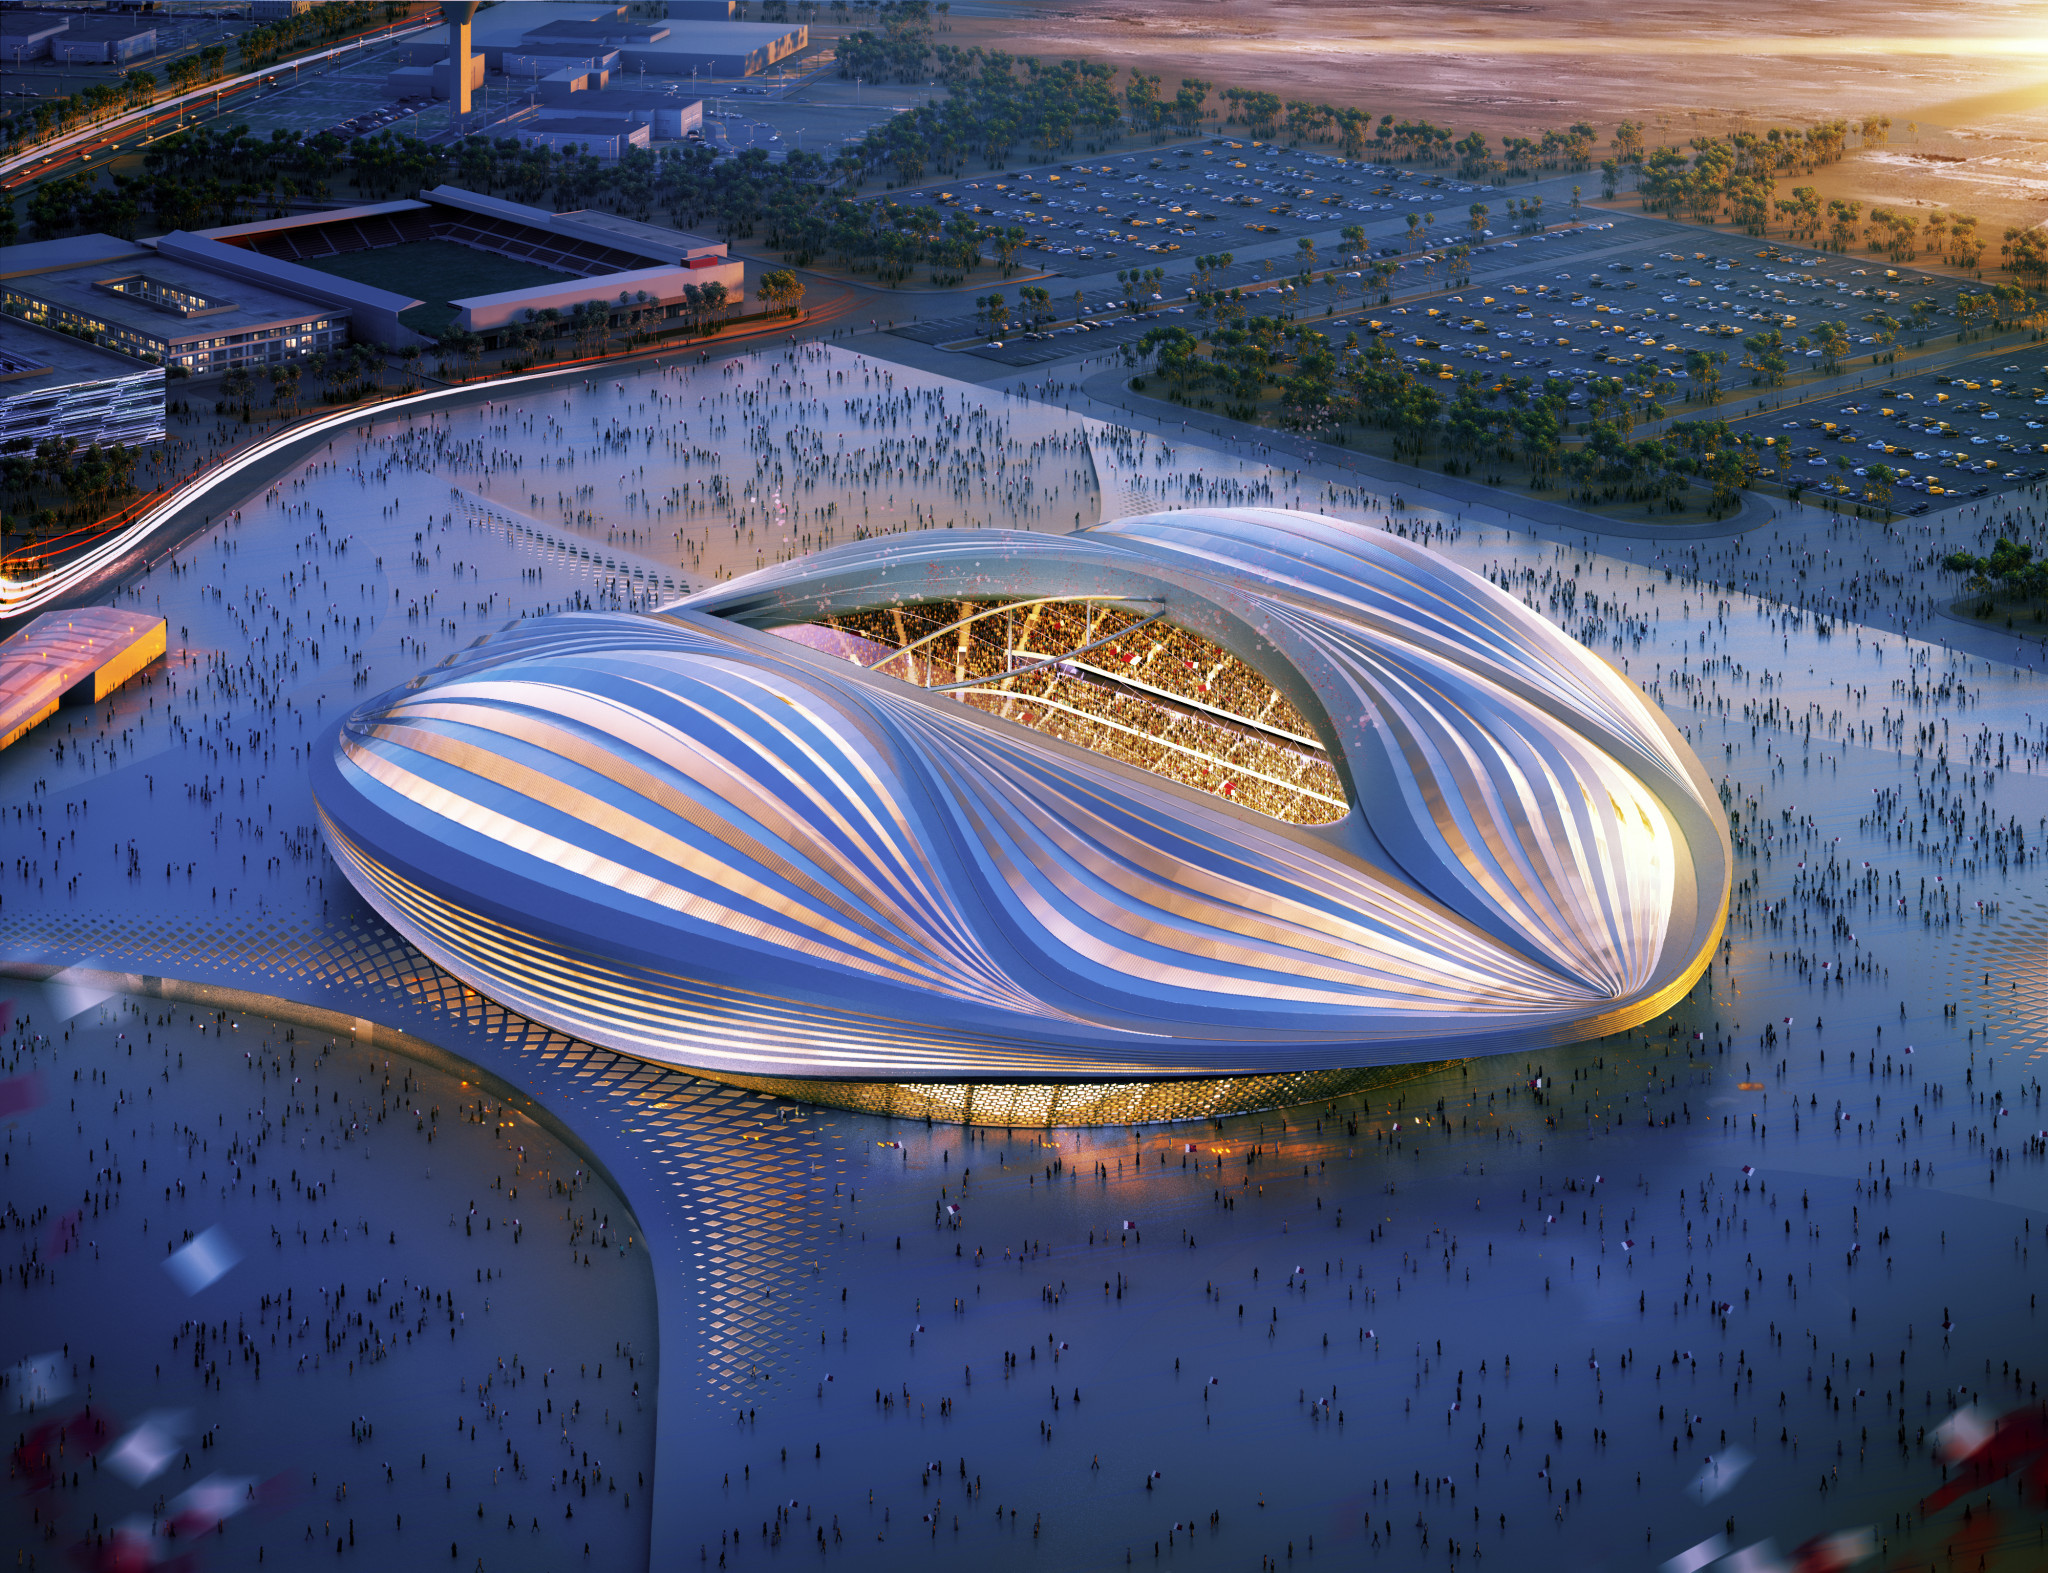 A report from FIFA's Human Rights Advisory Board has called on the worldwide governing body to strengthen efforts to combat workers' rights at Russia 2018 and Qatar 2022 World Cup construction sites ©Getty Images